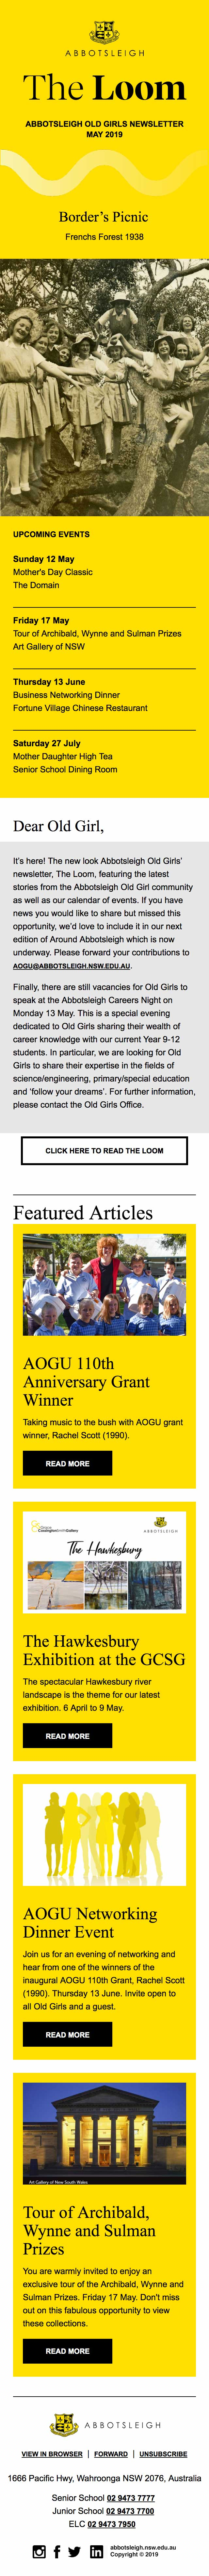 AOGU Newsletter, The Loom May 2019 - mobile view